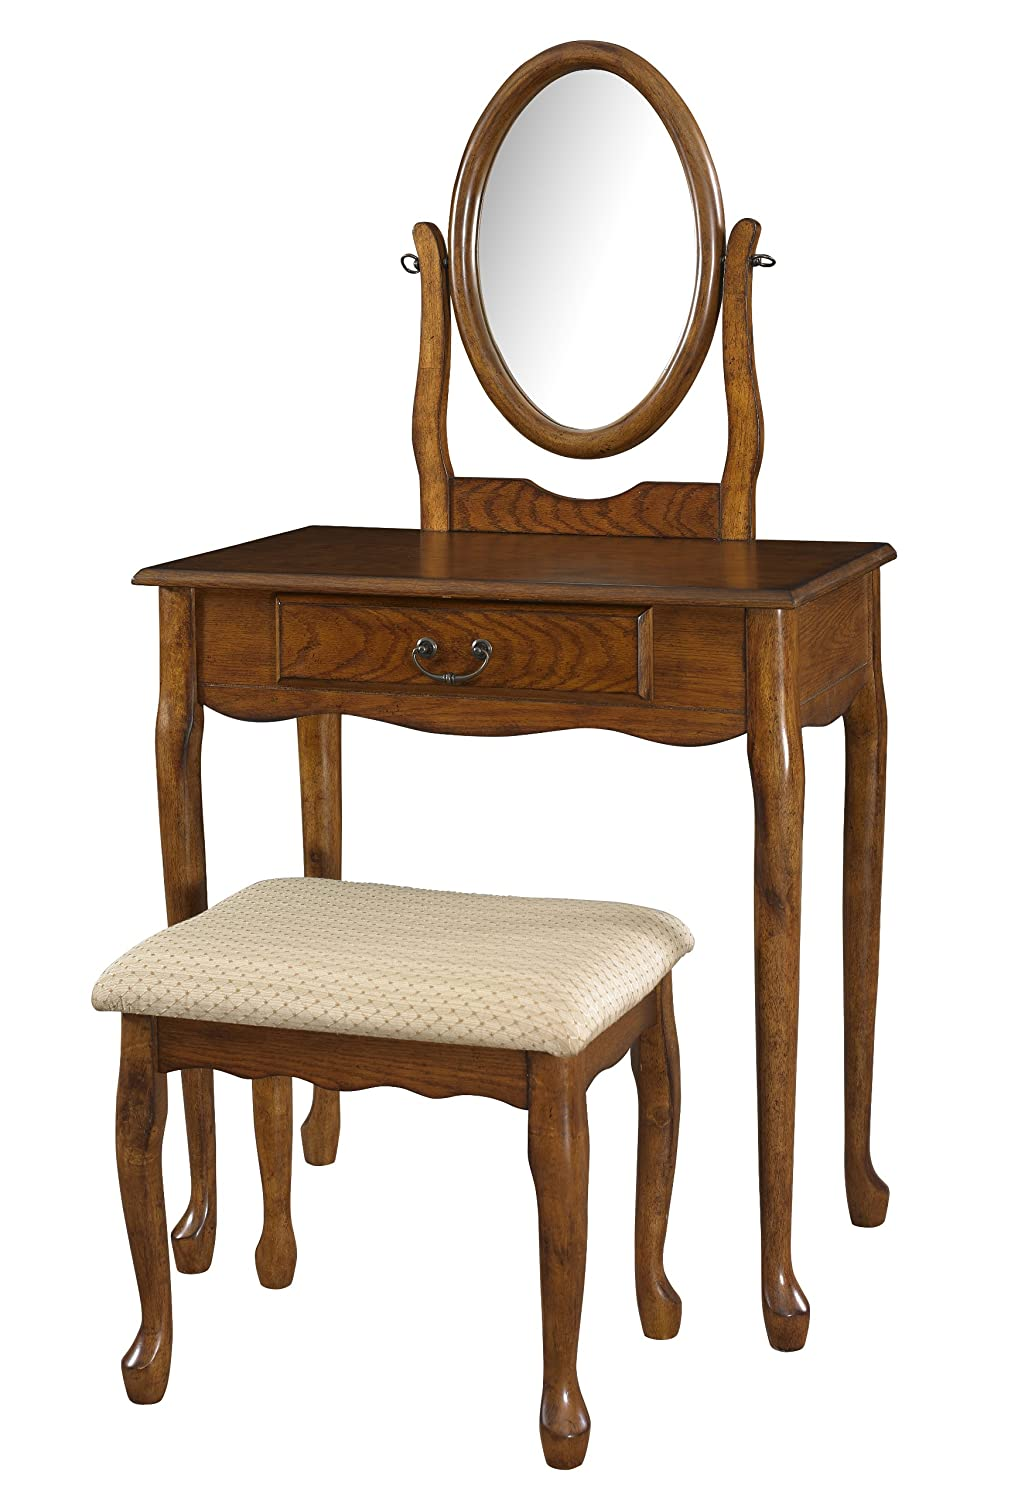 Amazon.com: Powell Company Woodland Oak Vanity Mirror and Bench ...